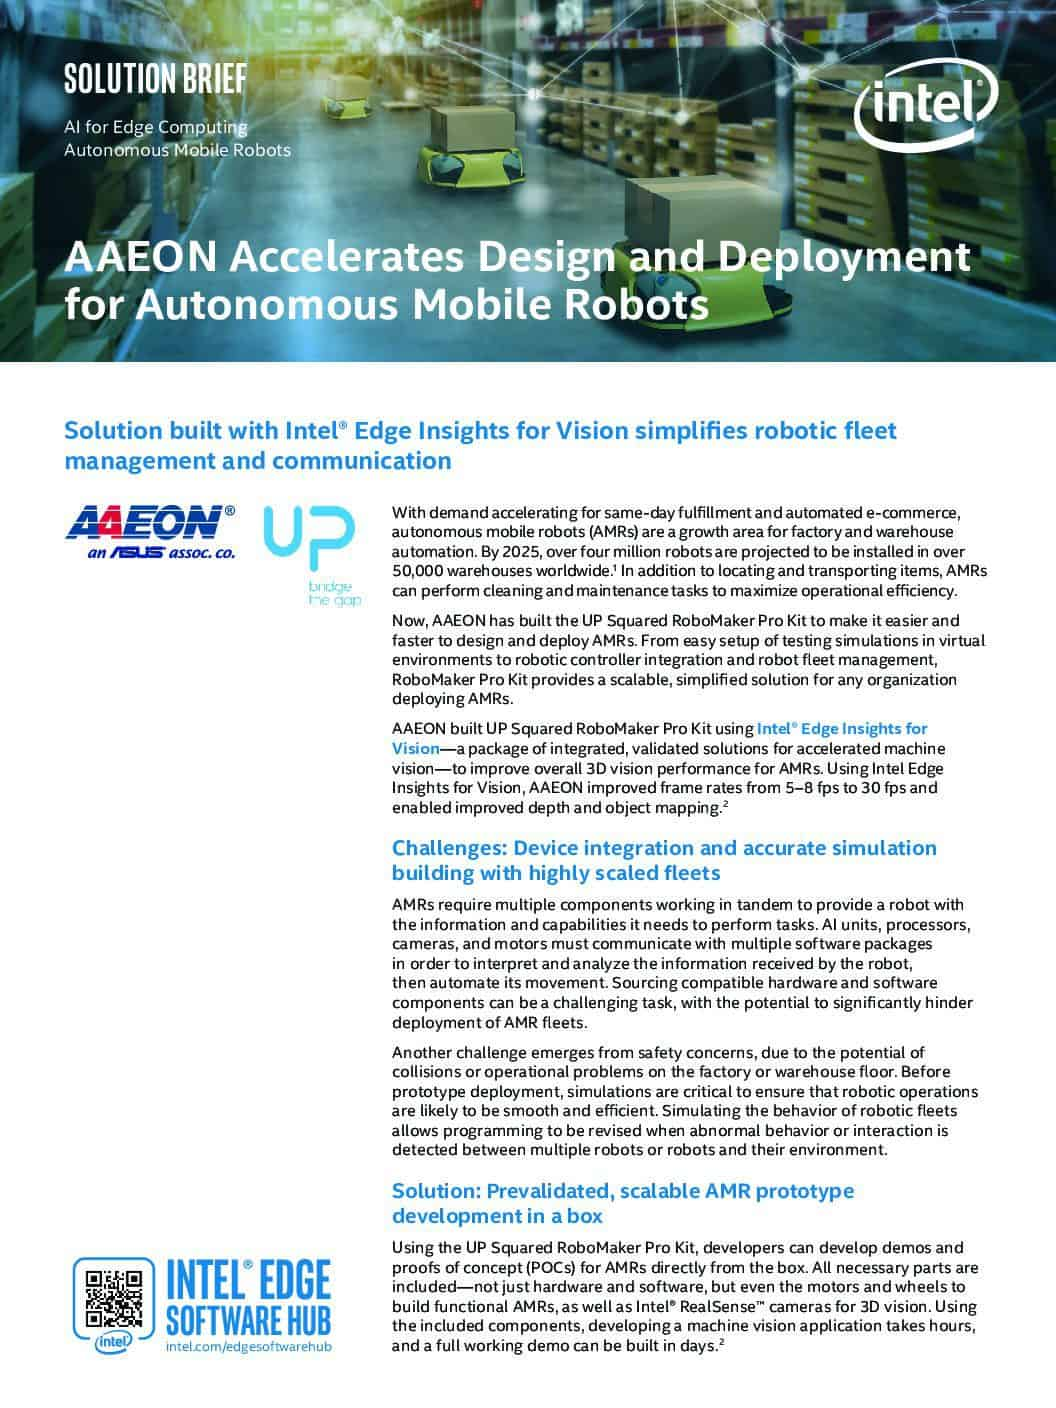 AAEON Accelerate Design and Deployment for Autonomous Mobile Robots